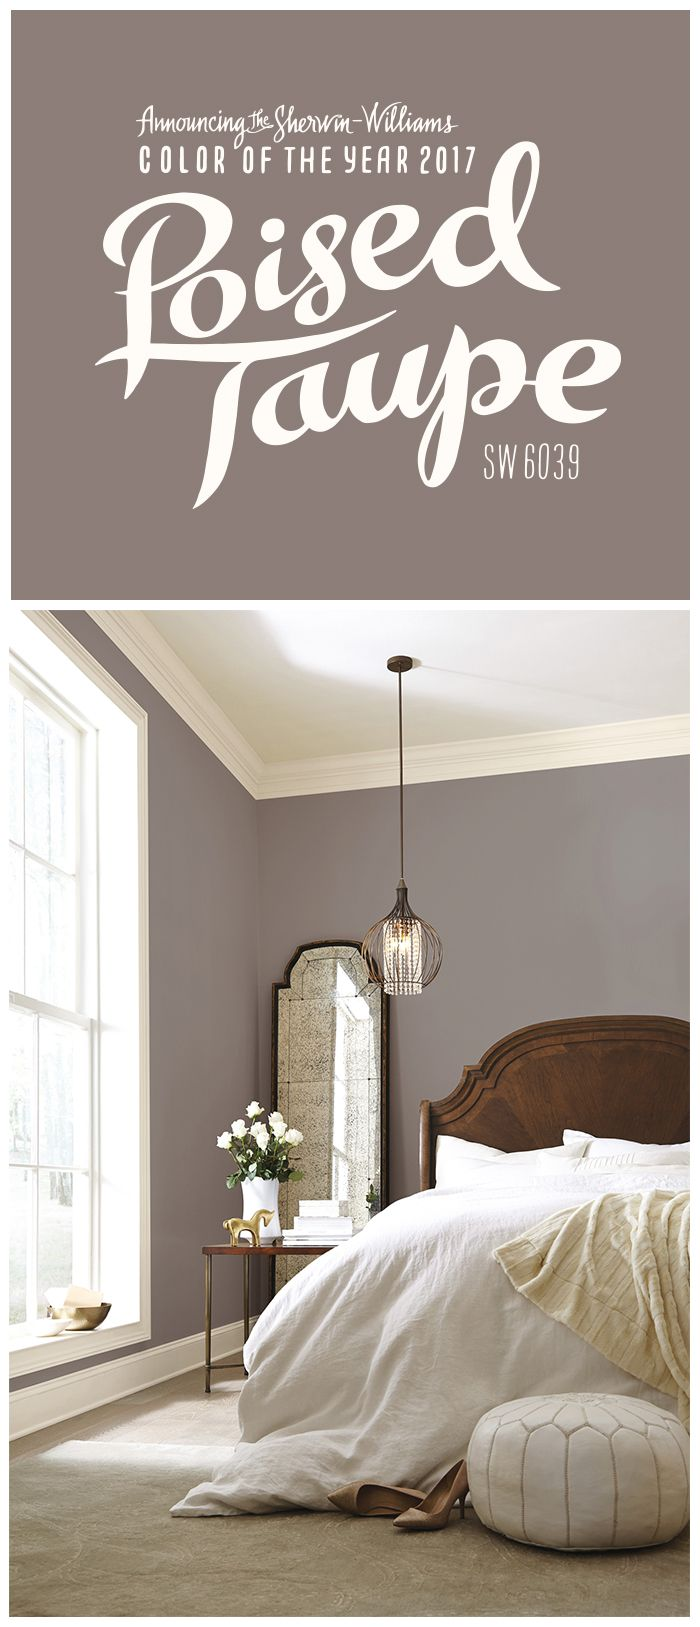 Find This Pin And More On Paint Color Of The Year